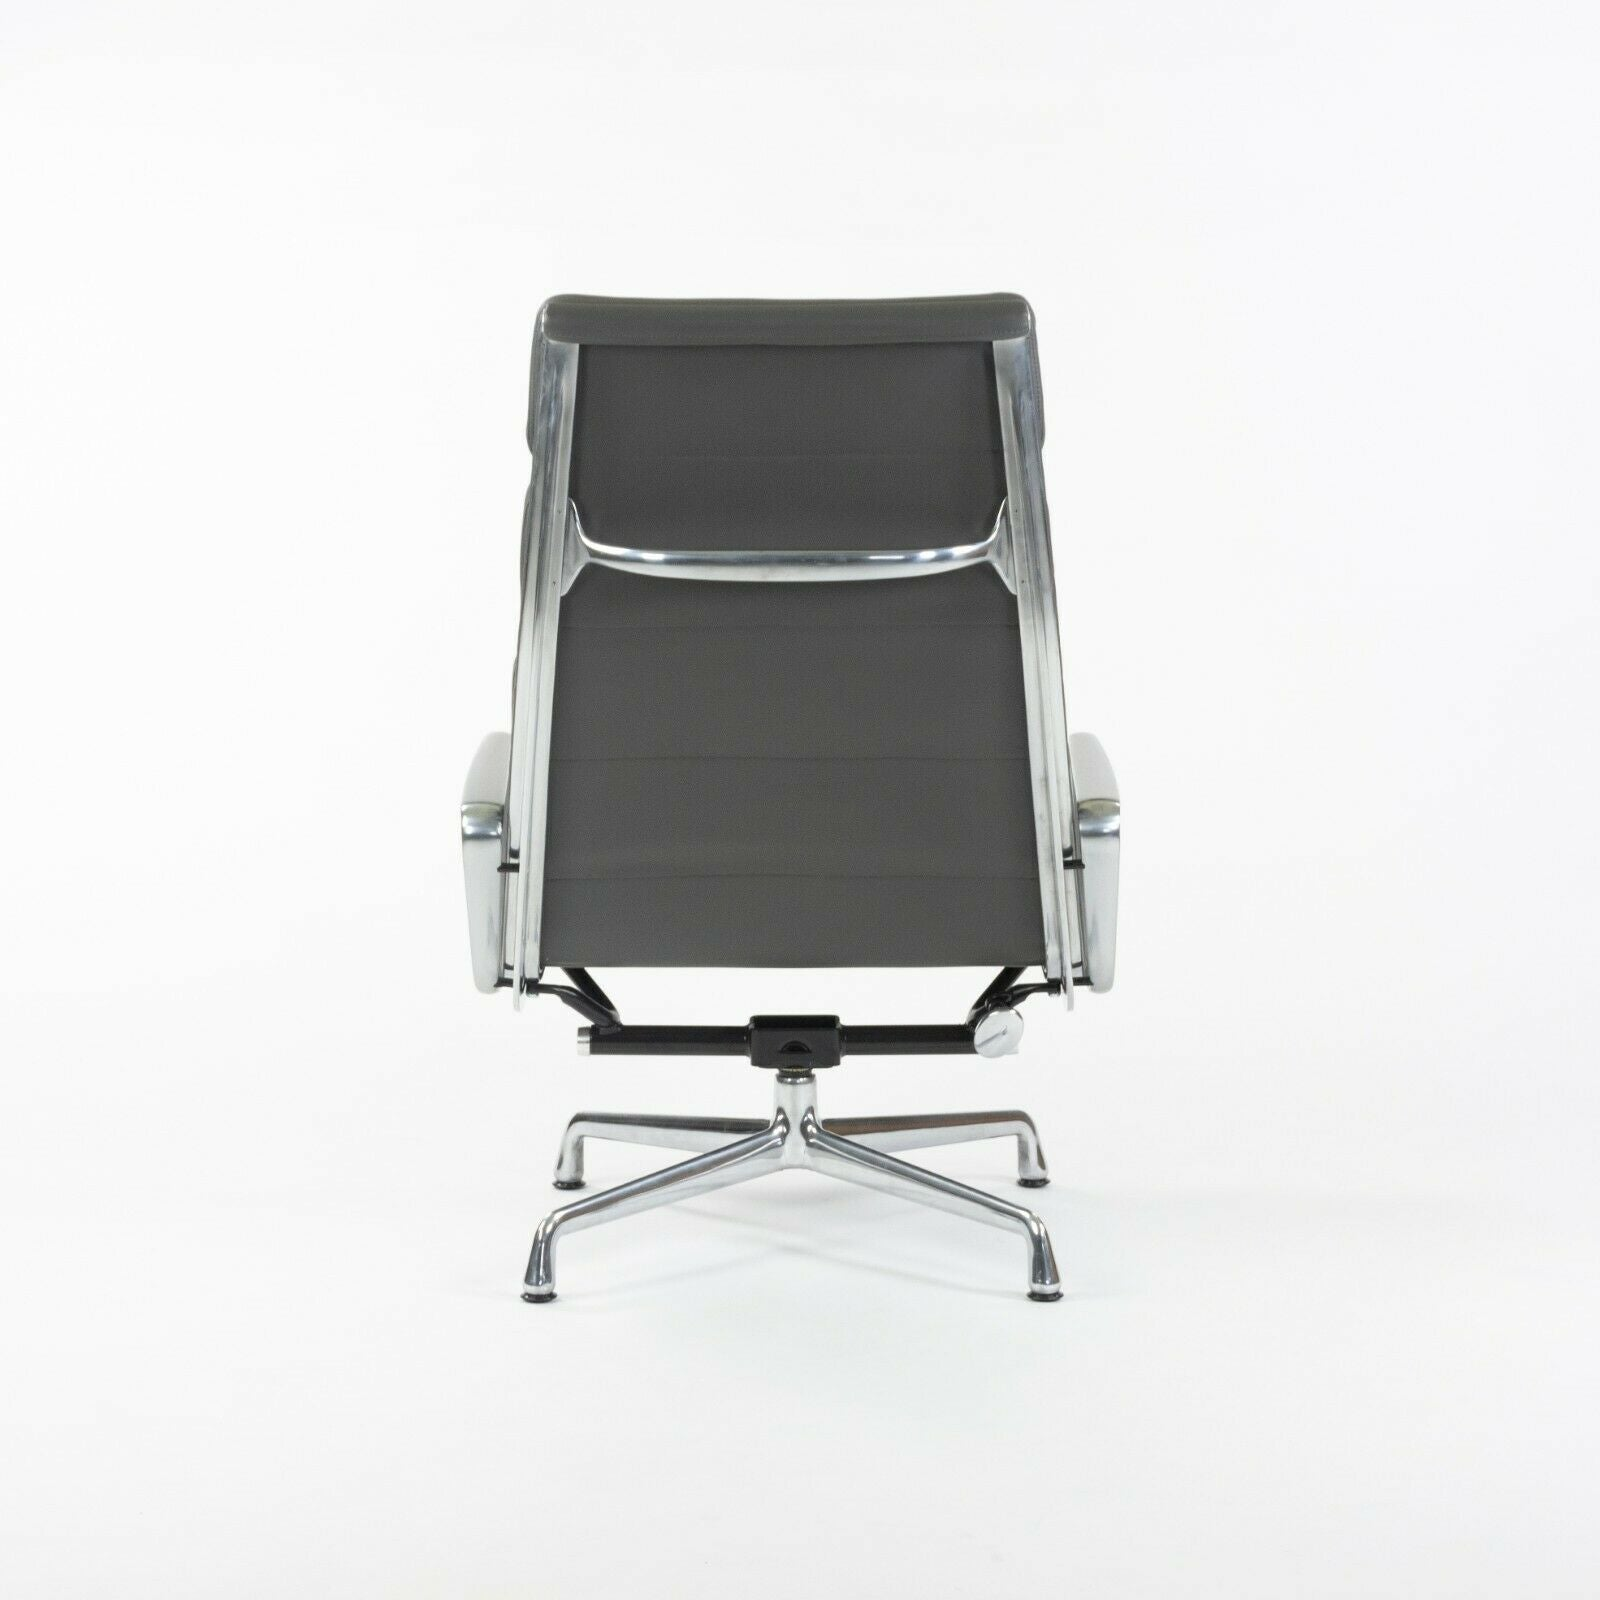 SOLD 2015 Eames Herman Miller Grey Soft Pad Aluminum Group Lounge Chair 3x Available